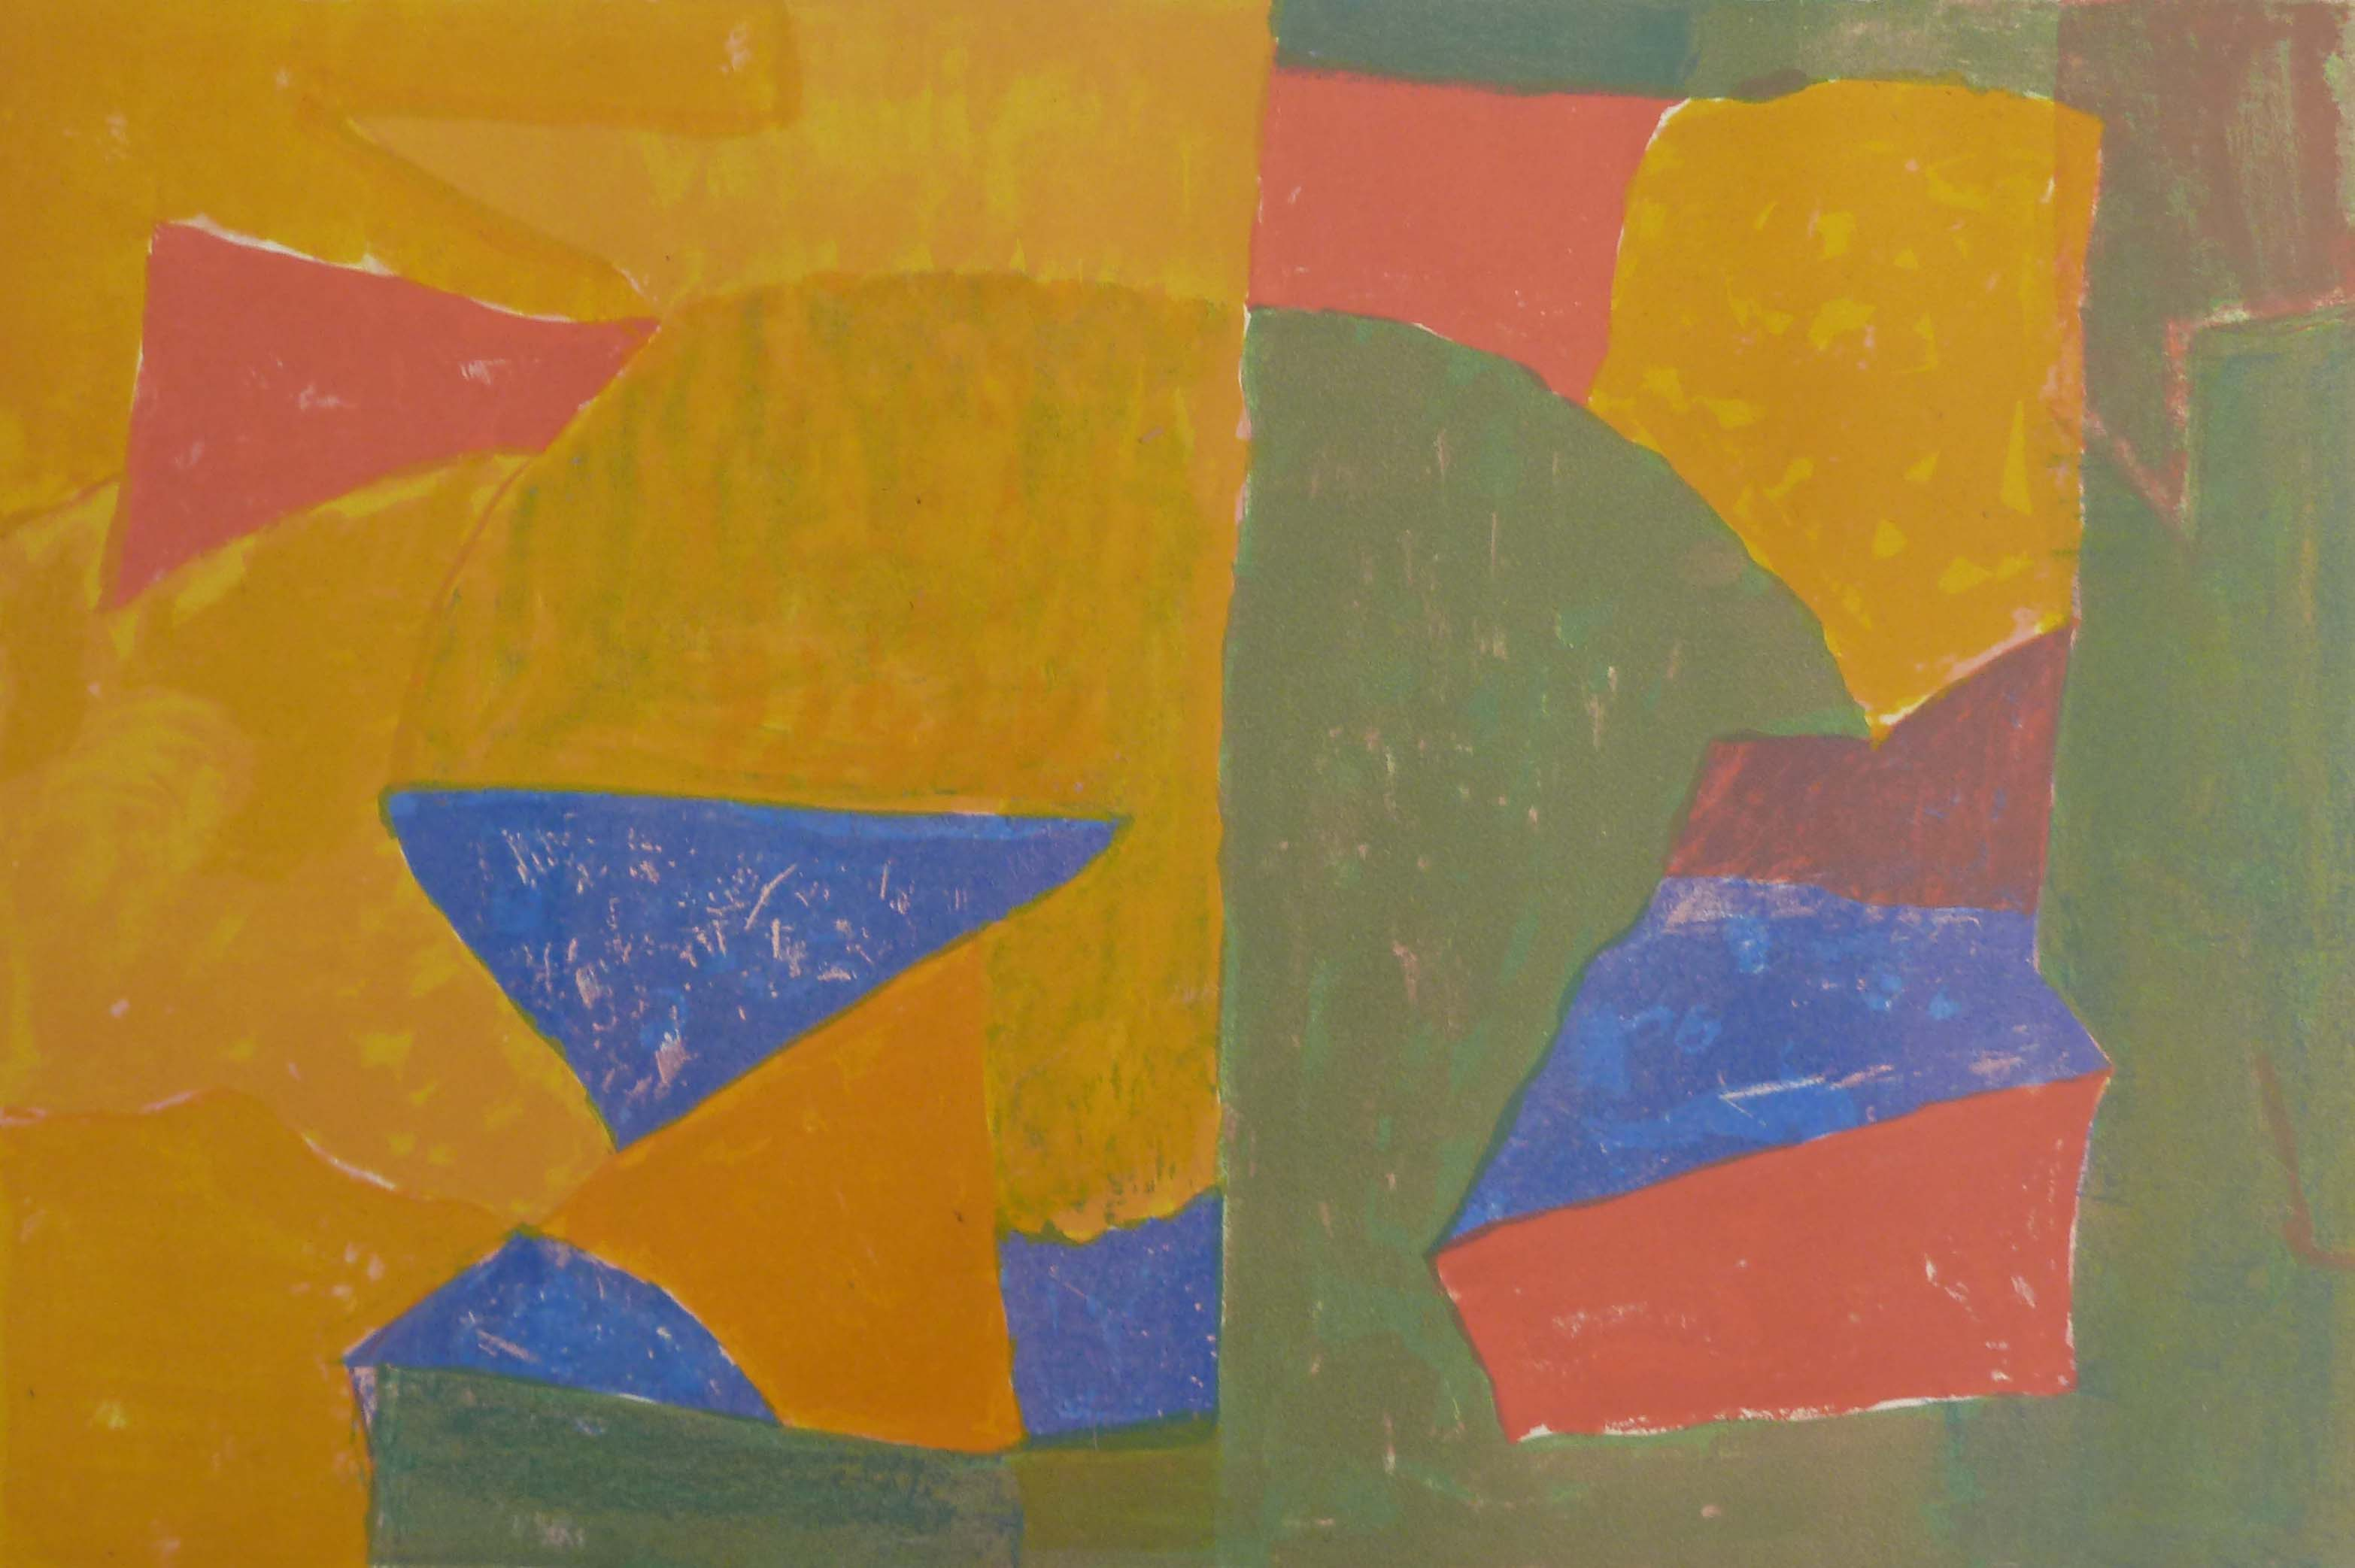 Composition in Yellow, Green, Blue, and Red